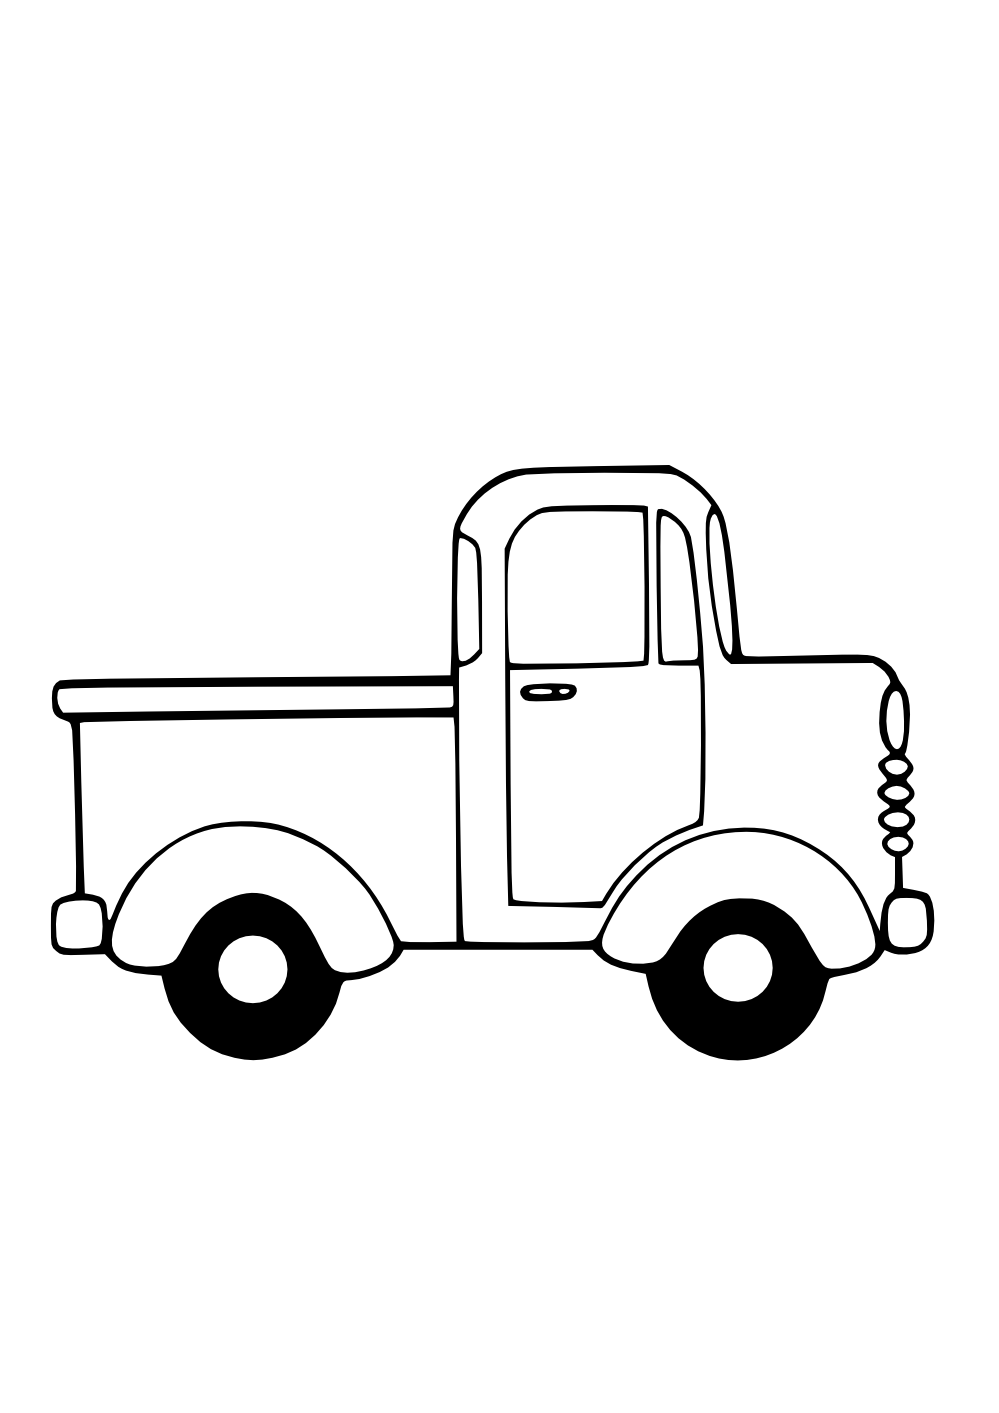 graphic free Gas station clipart black and white. Truck panda free images